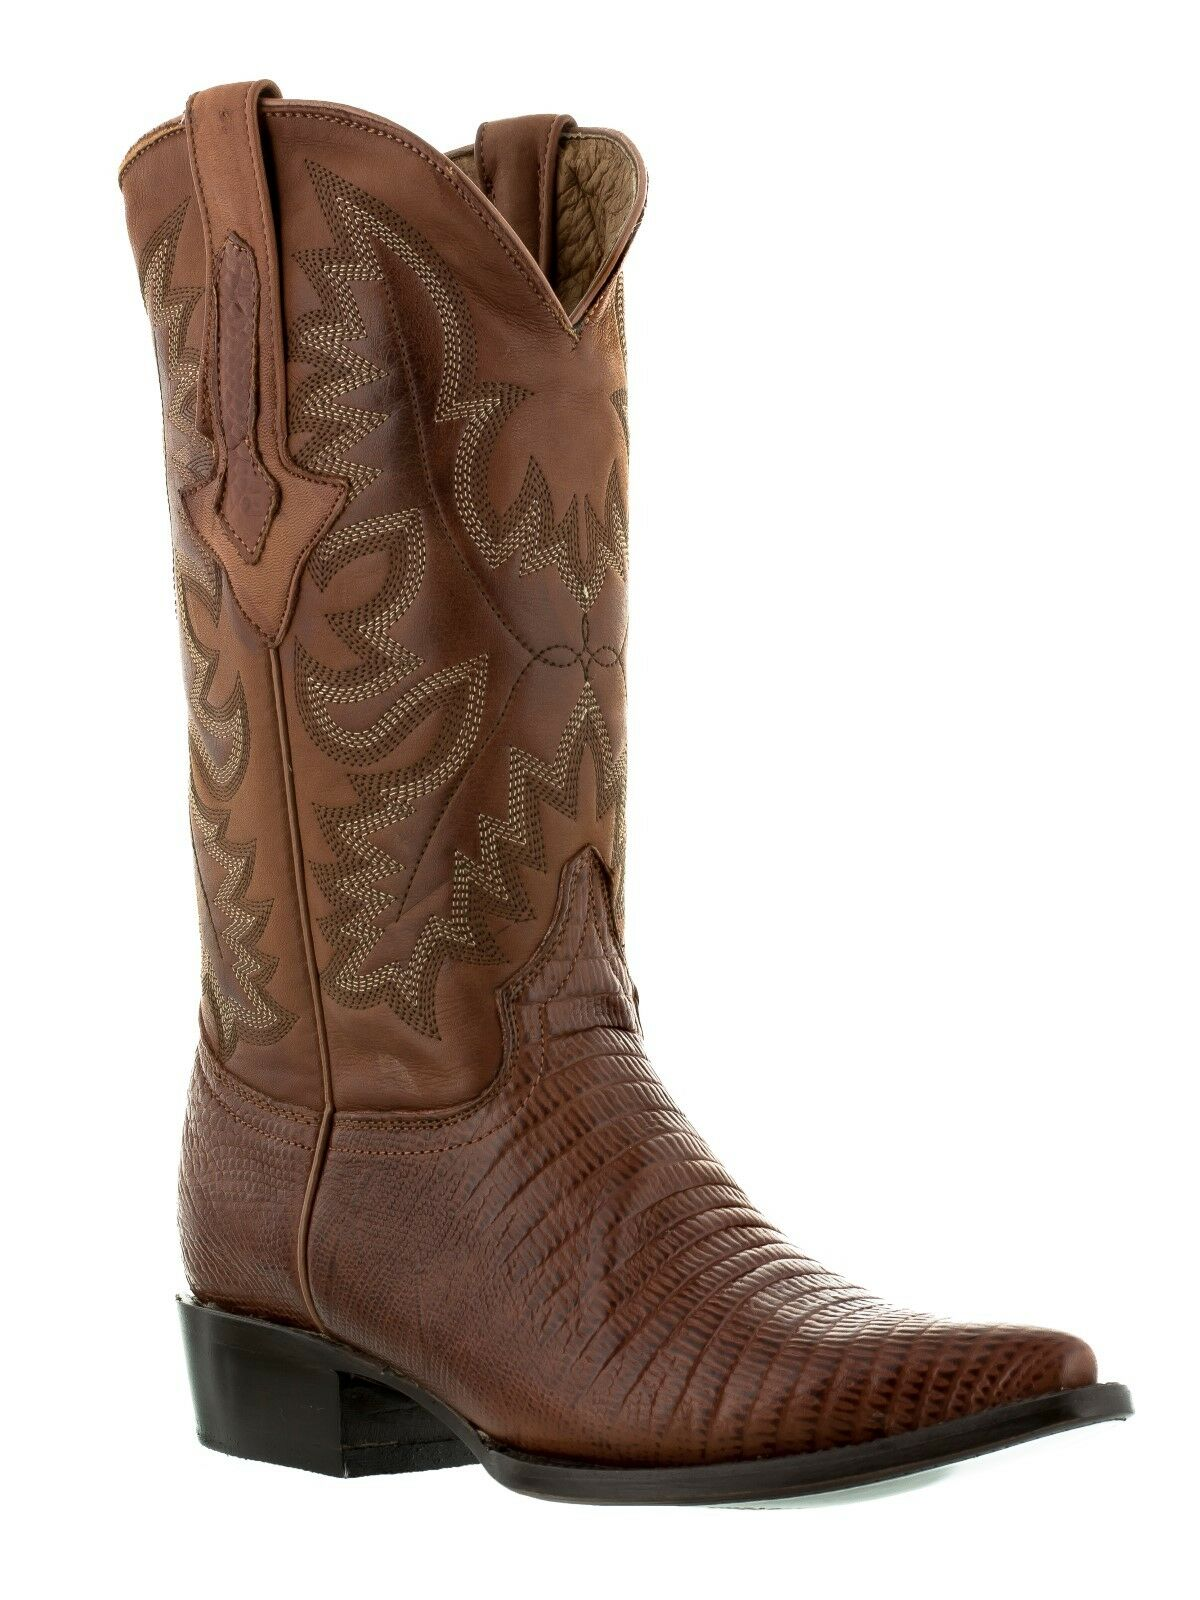 Mens Cognac Brown Lizard Design Western Cowboy Leather Boots Armadillo